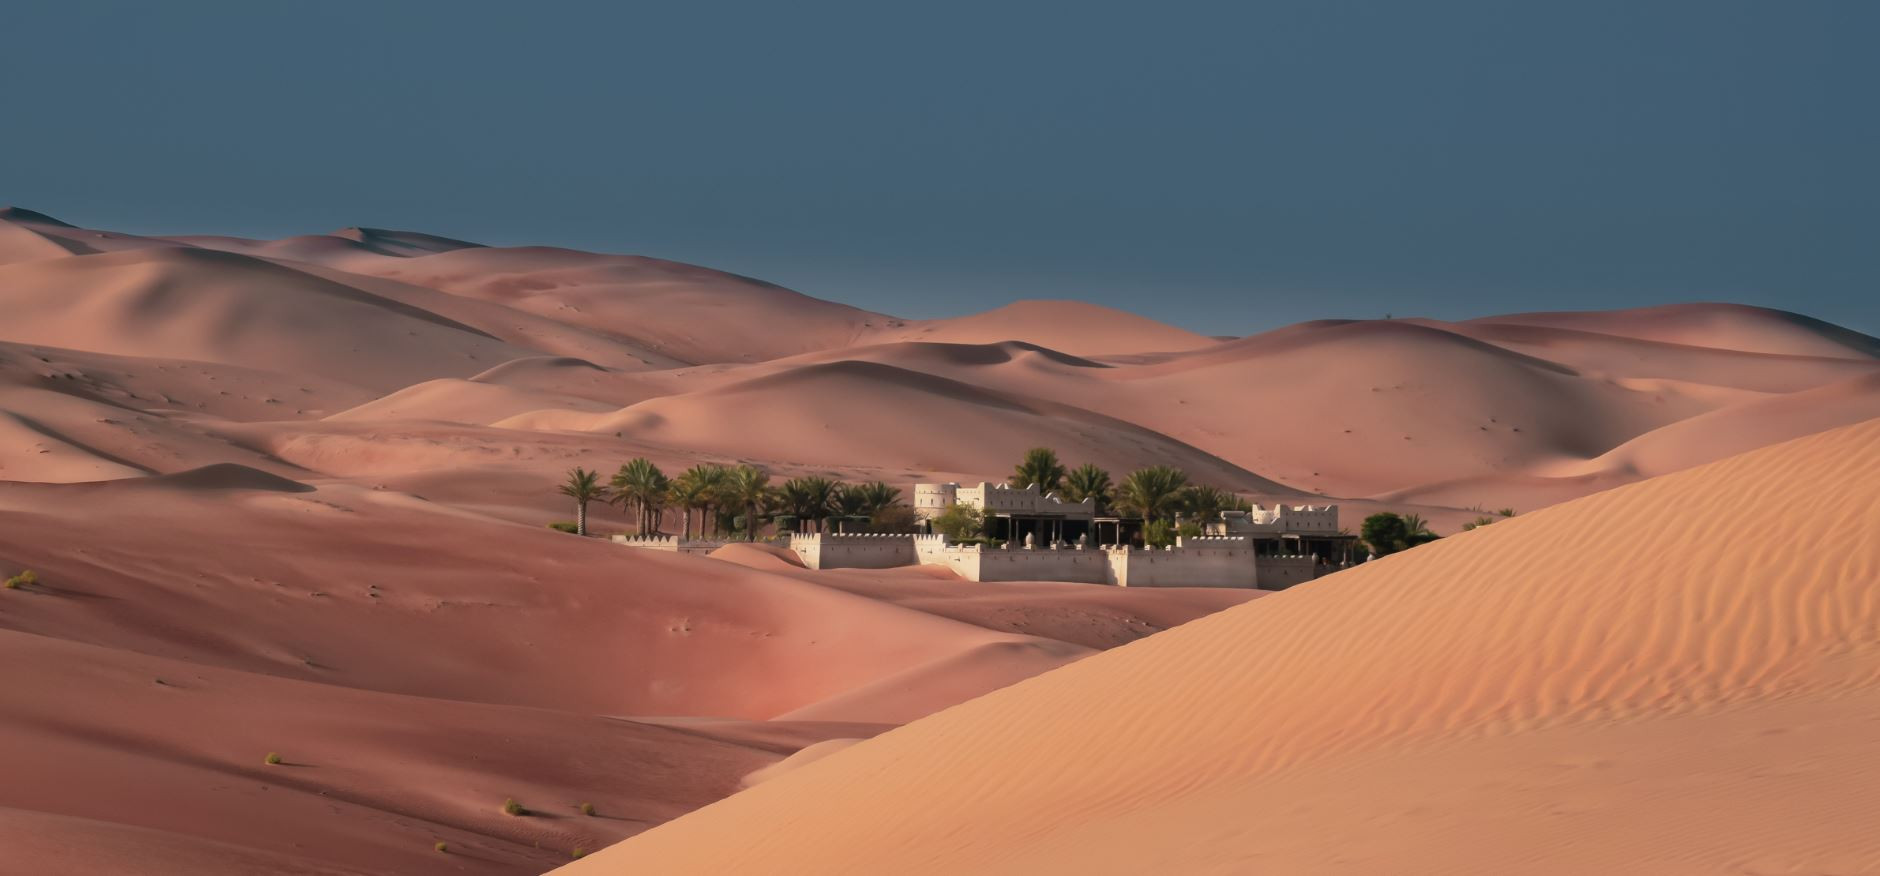 JESTravelDesign_Dune_Retreat_UAE_Liwa_Qa